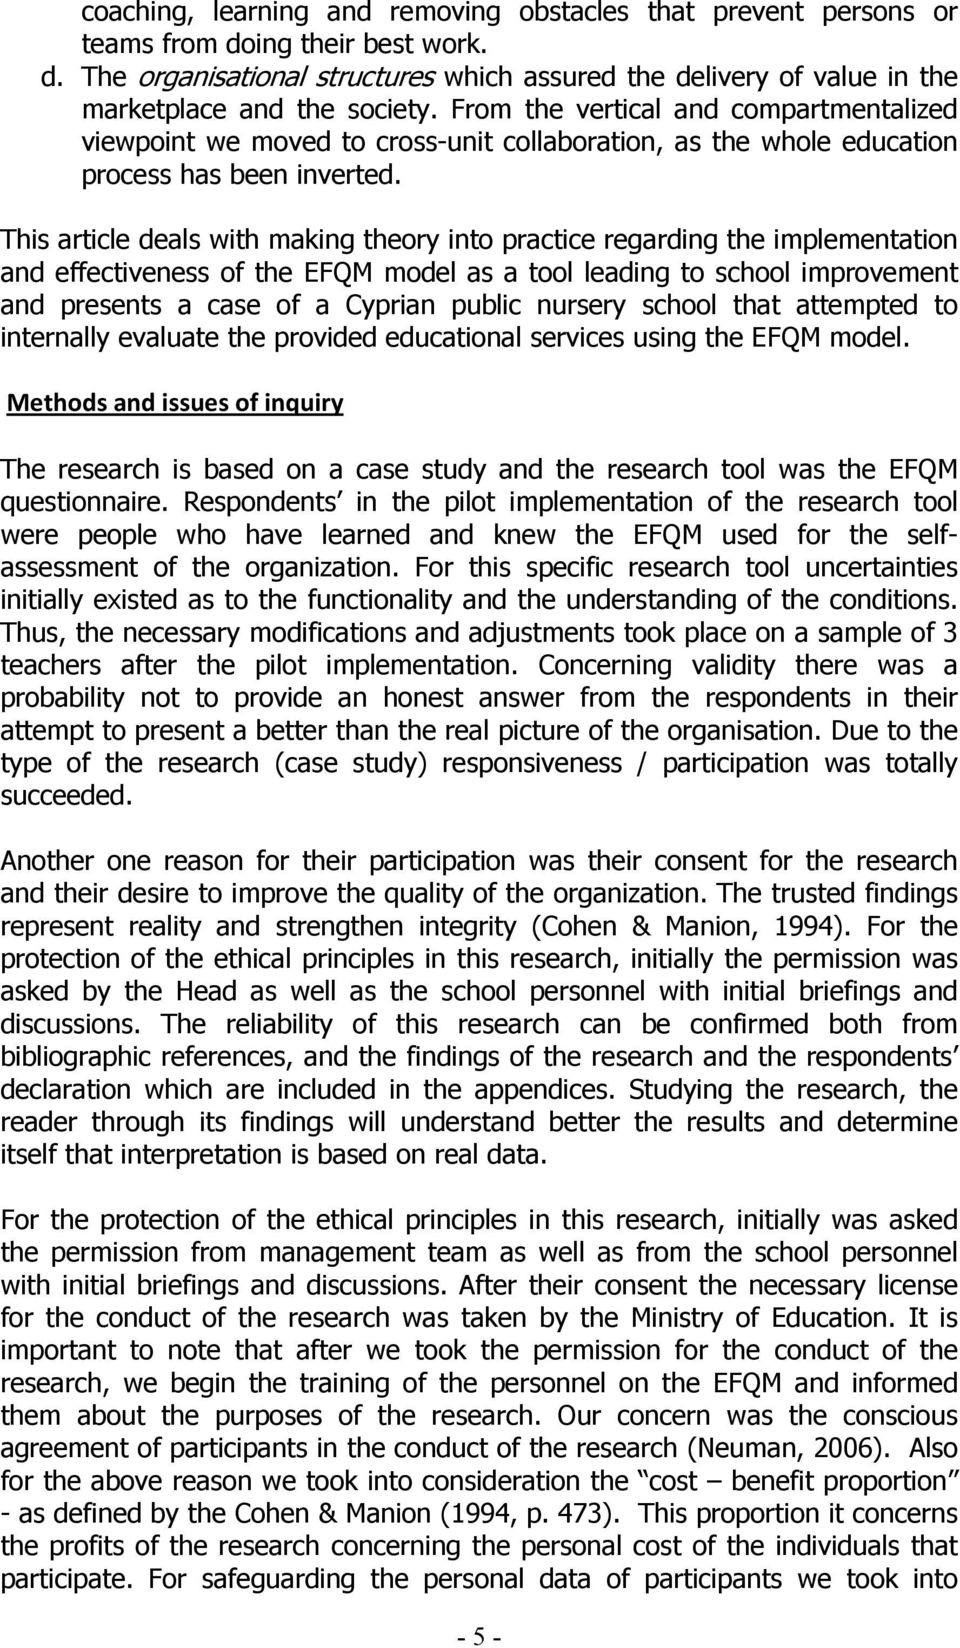 This article deals with making theory into practice regarding the implementation and effectiveness of the EFQM model as a tool leading to school improvement and presents a case of a Cyprian public